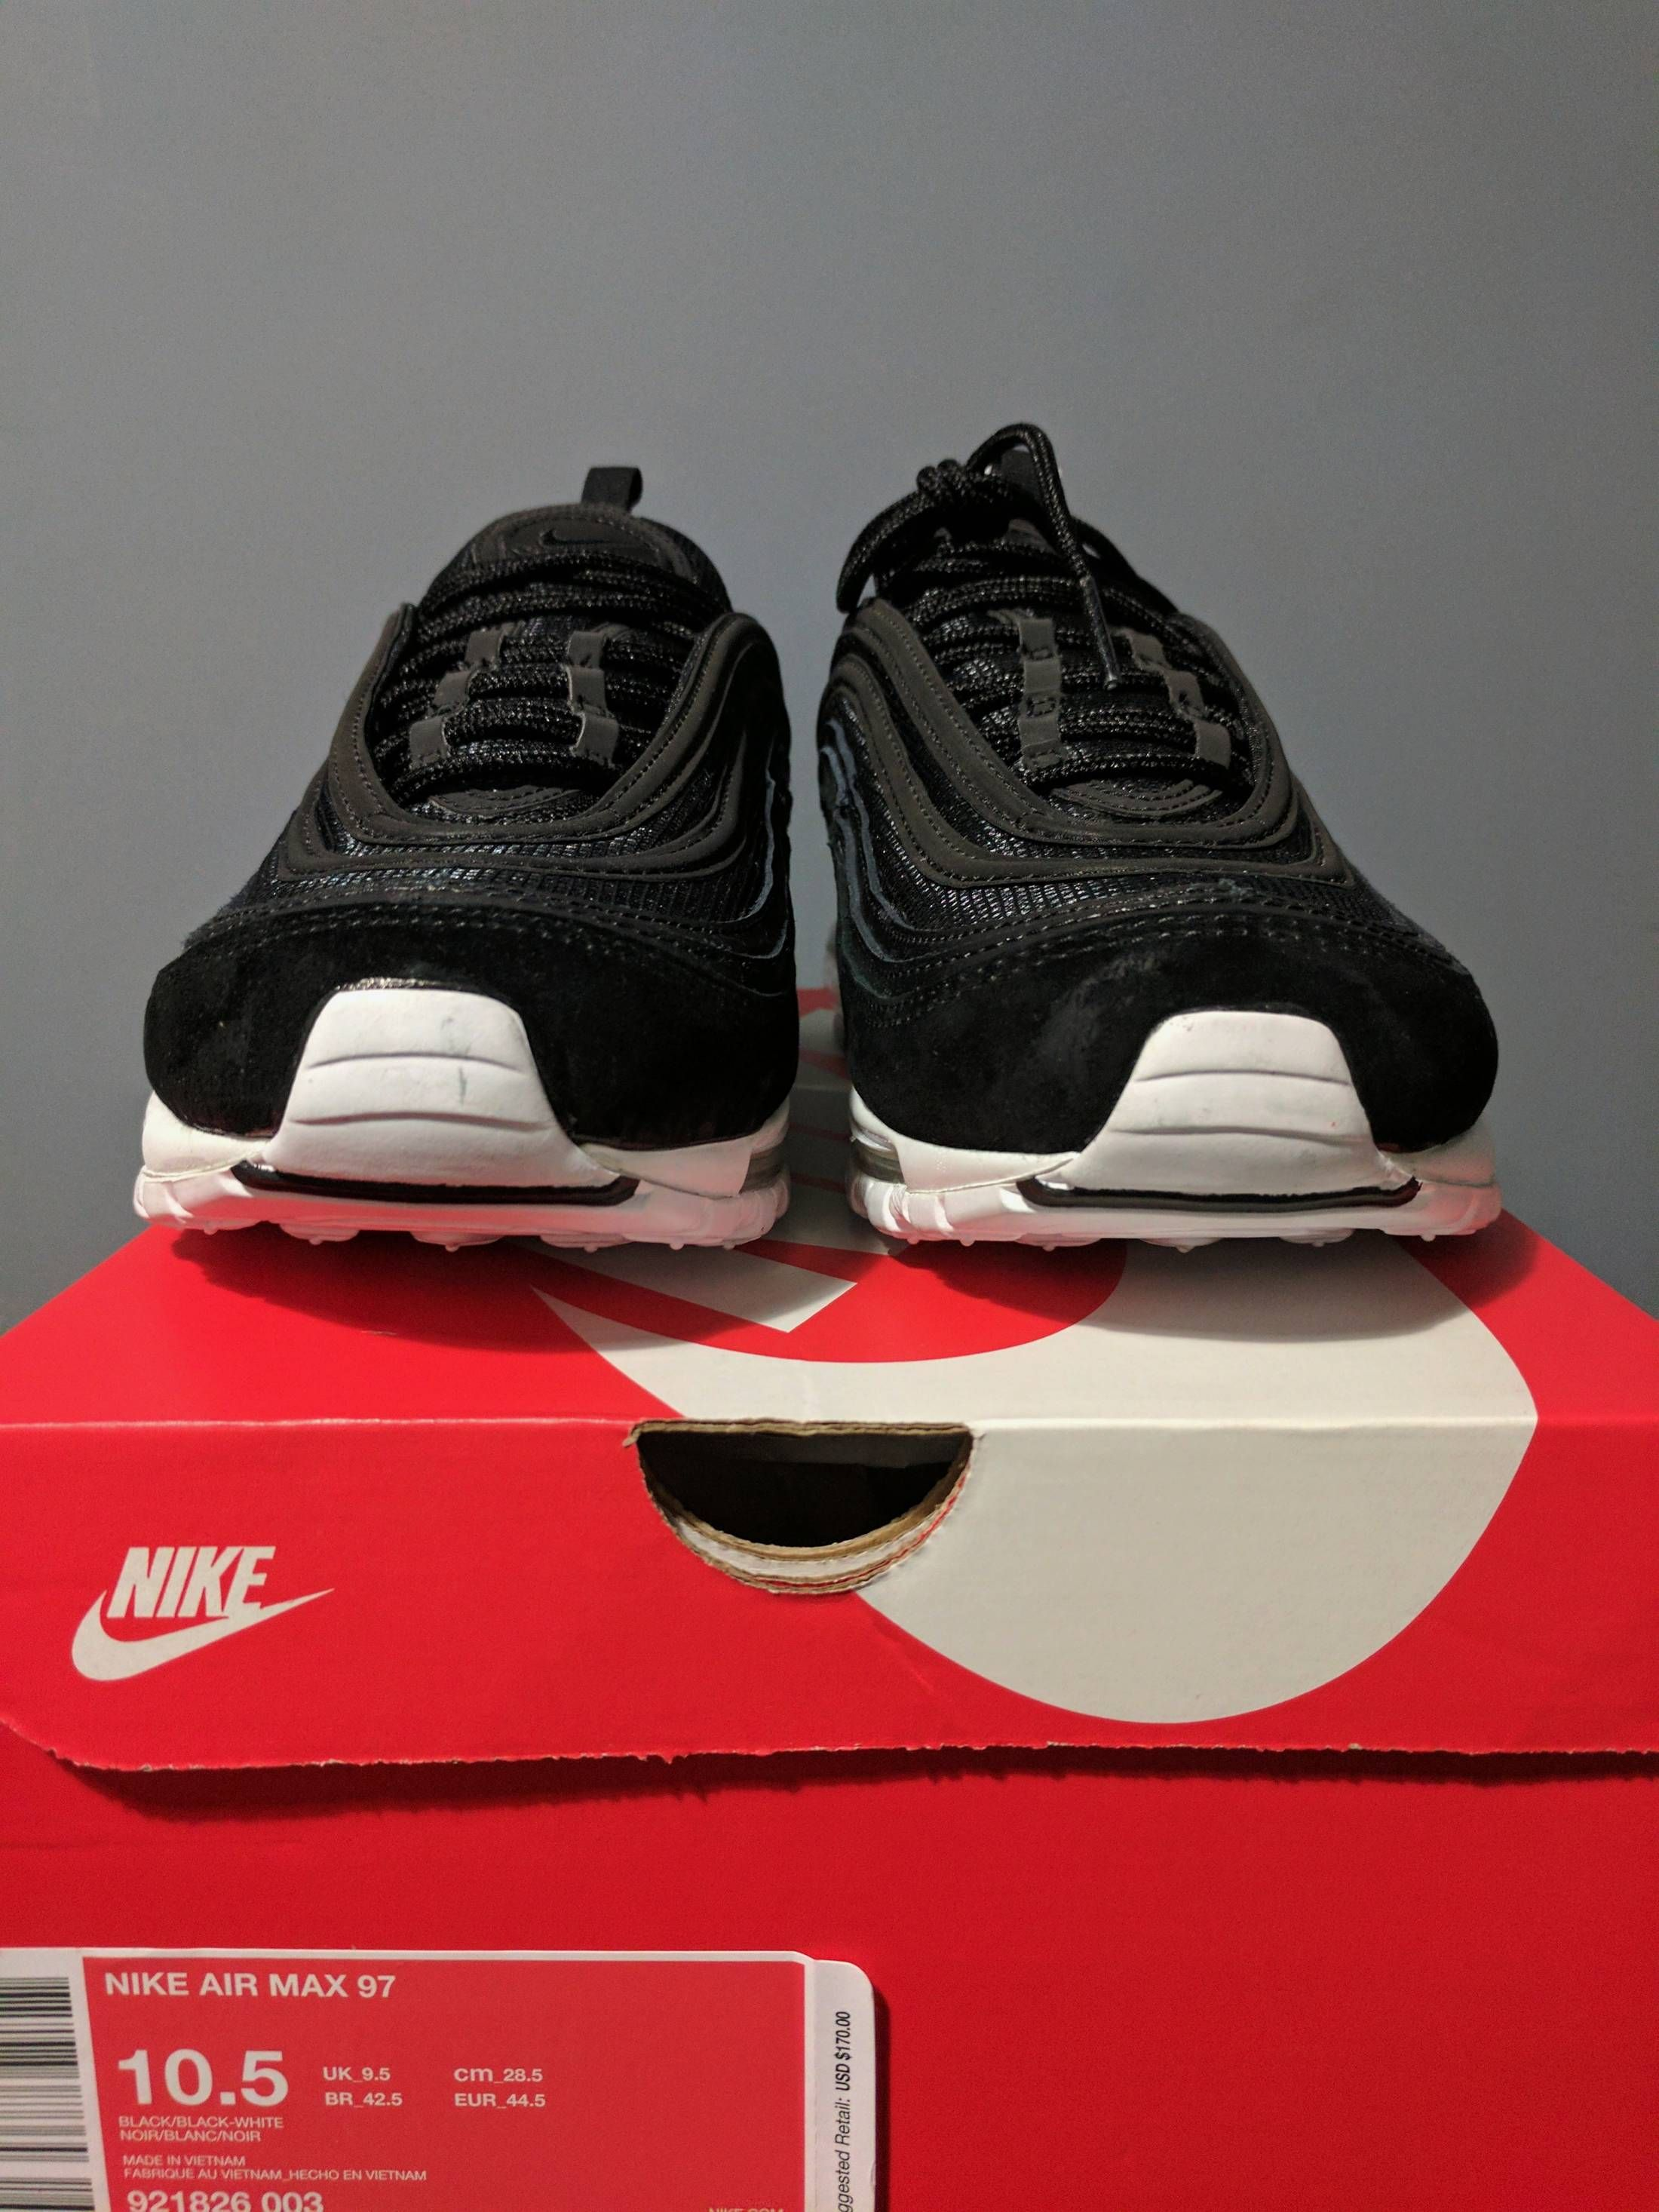 19951209b3 Nike Air Max 97 Premium Black White Size US 10.5 / EU 43-44 ...